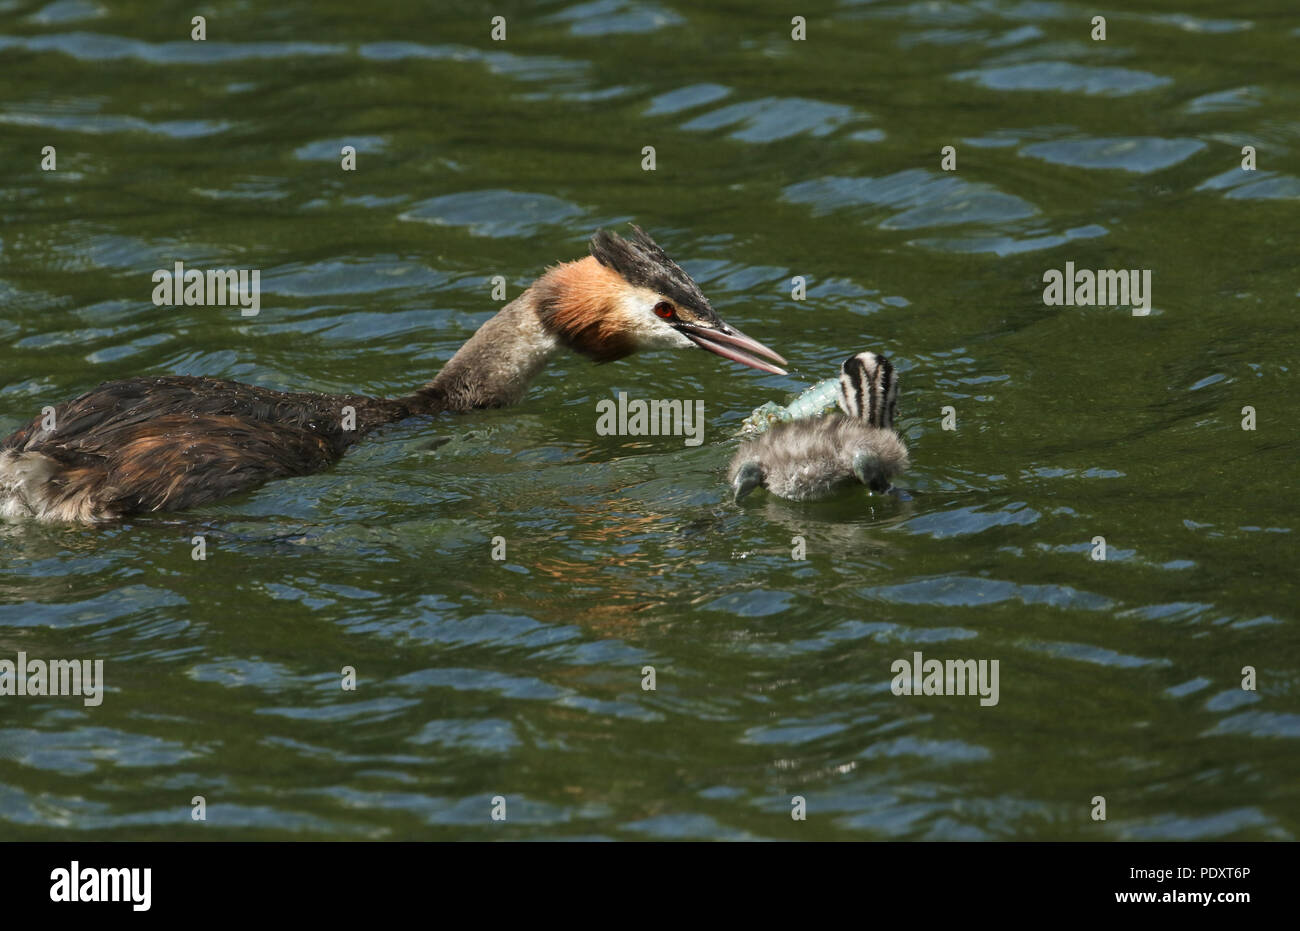 Two stunning Great Crested Grebe (Podiceps cristatus) swimming in a river. The parent bird is feeding a Crayfish to the baby. - Stock Image